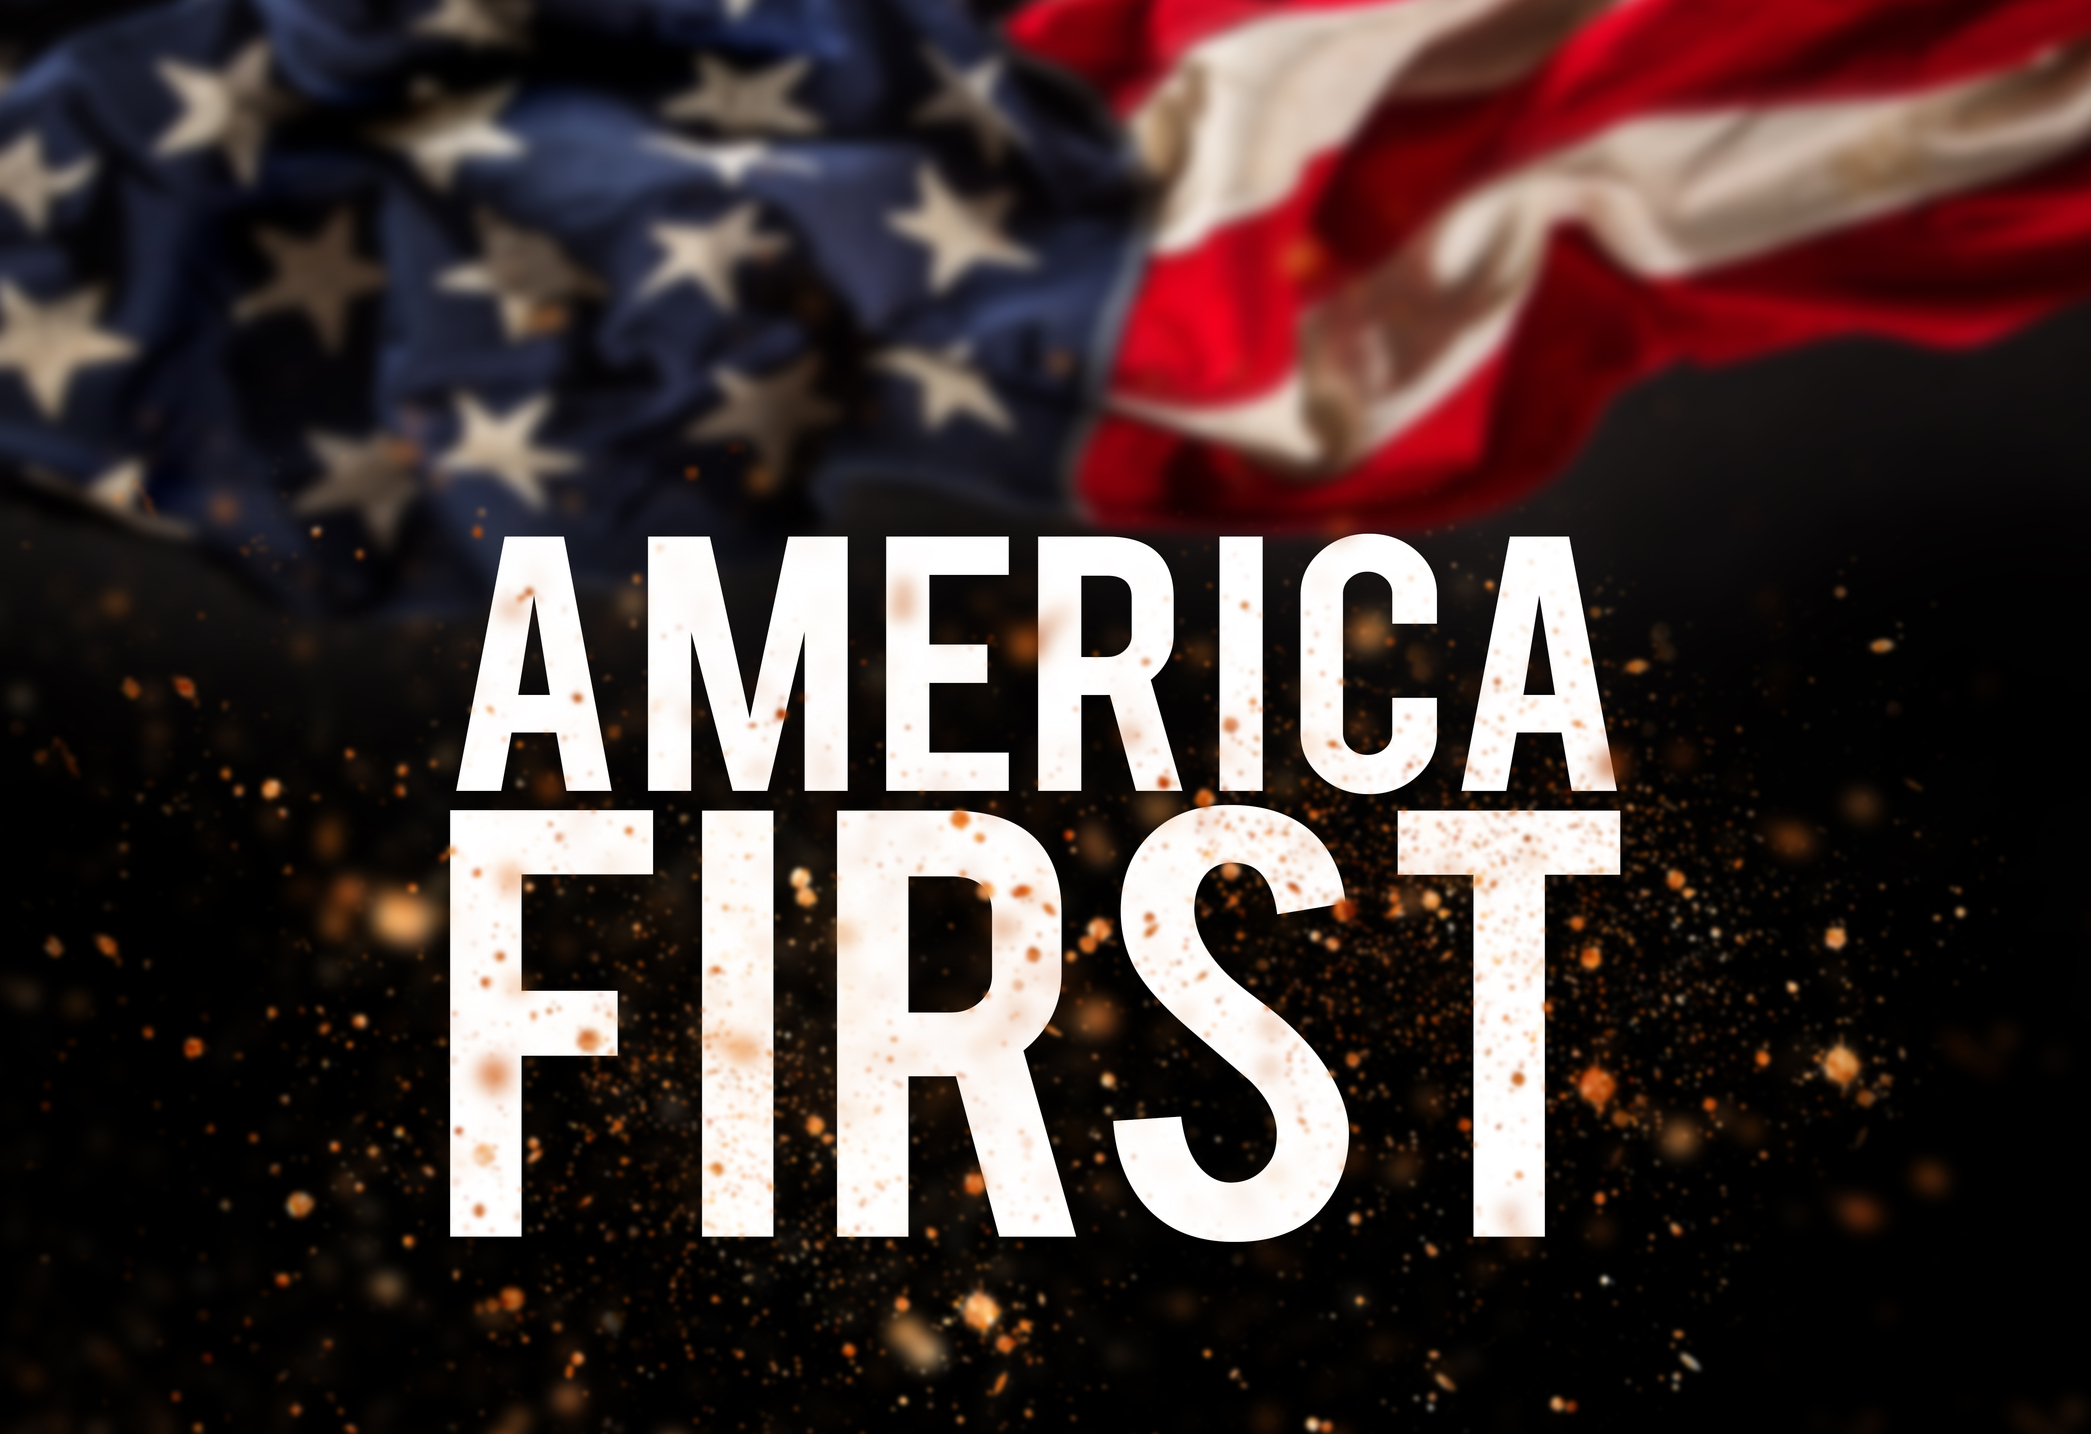 America first catcheword with american flag